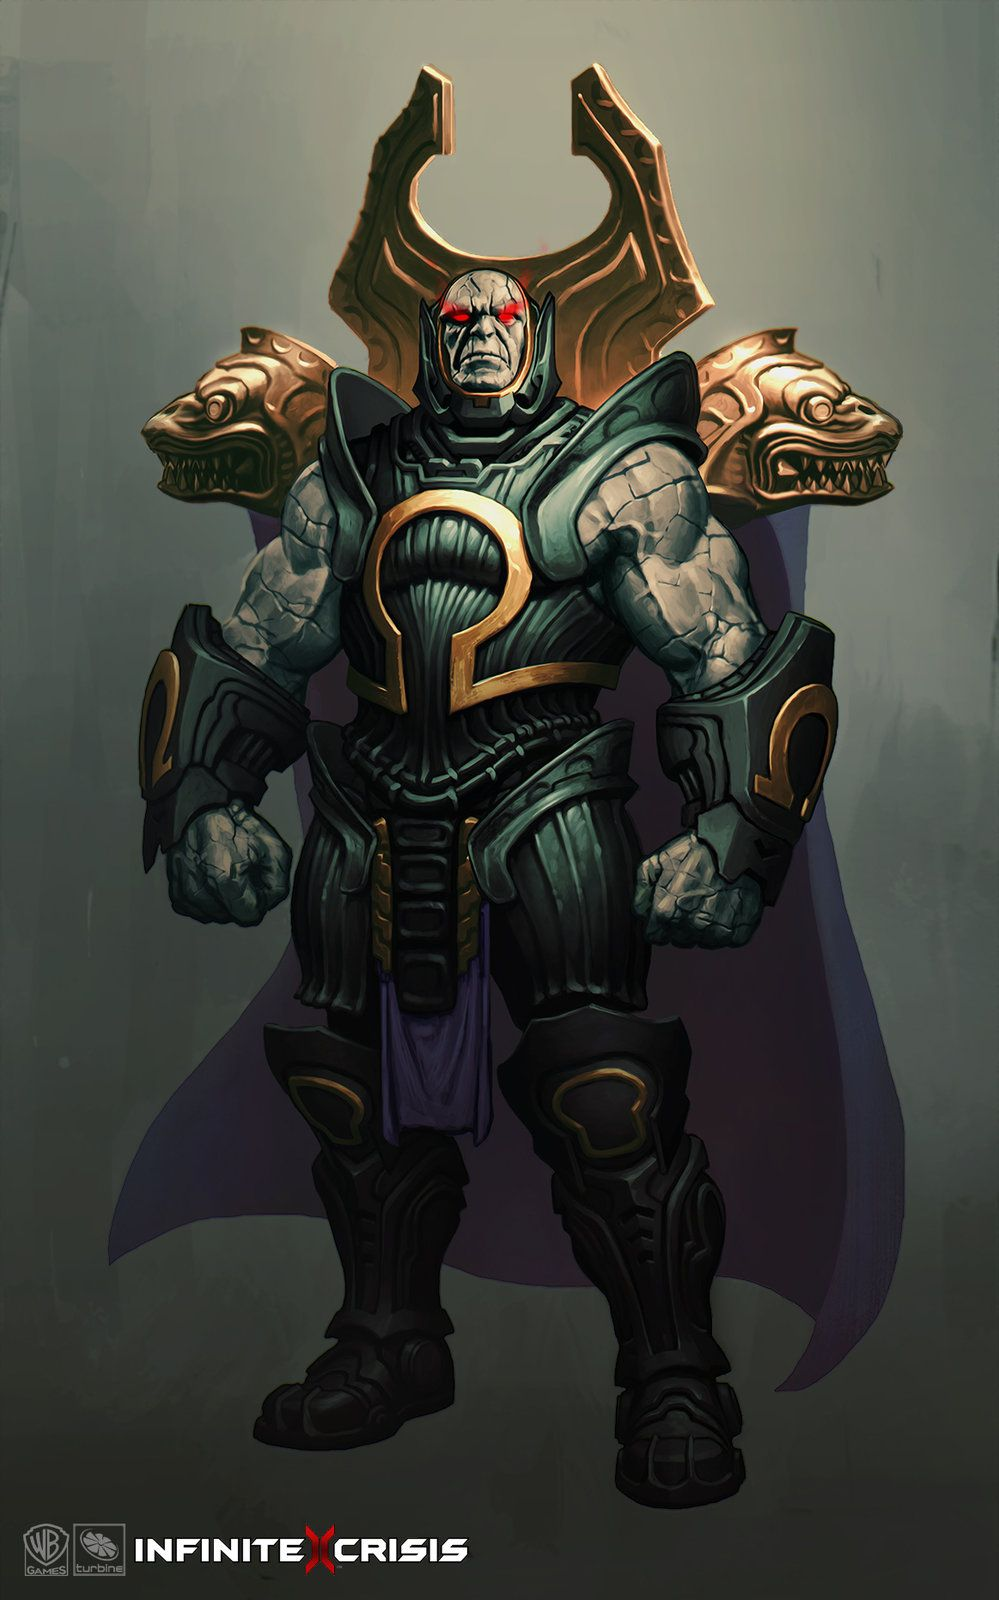 Darkside comic book character images